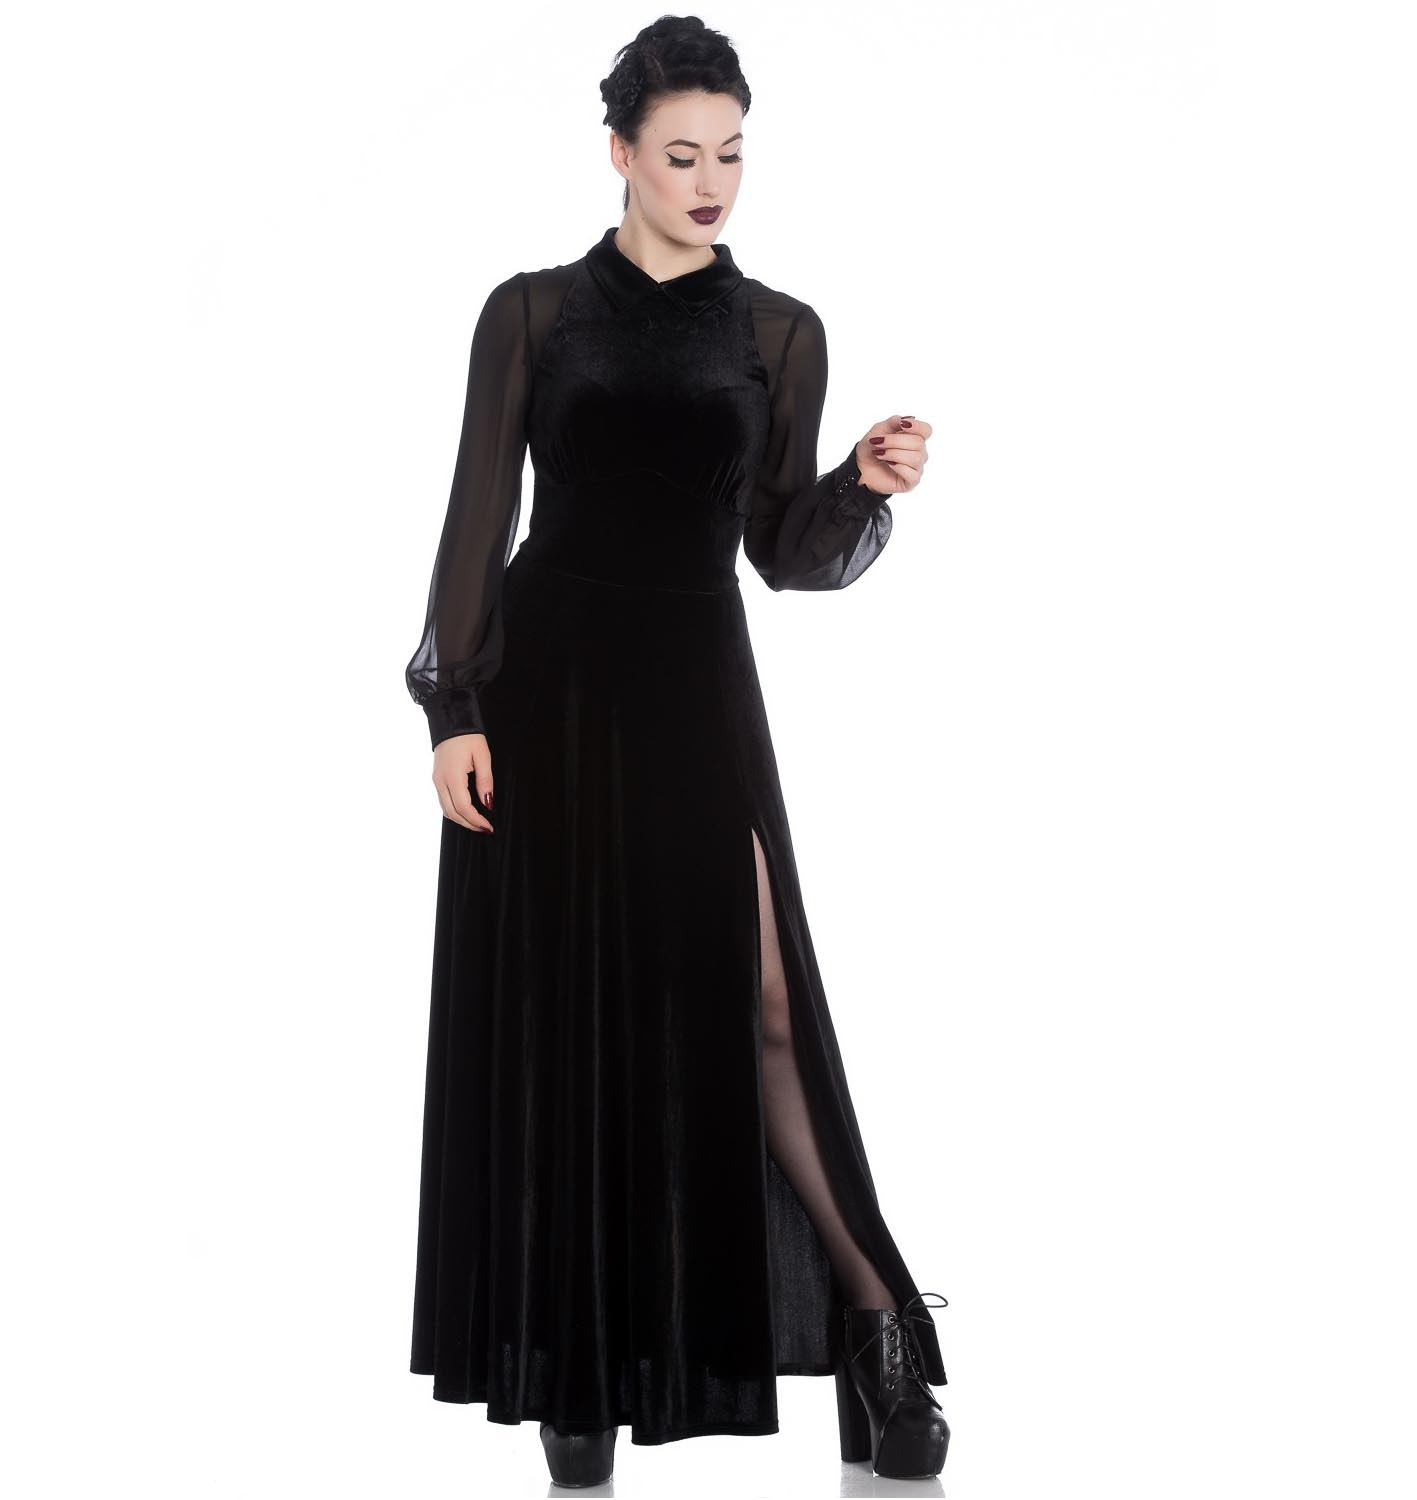 Hell-Bunny-Vampire-Goth-Elegant-Maxi-Dress-ESTELLE-Black-Velvet-Mesh-All-Sizes thumbnail 11